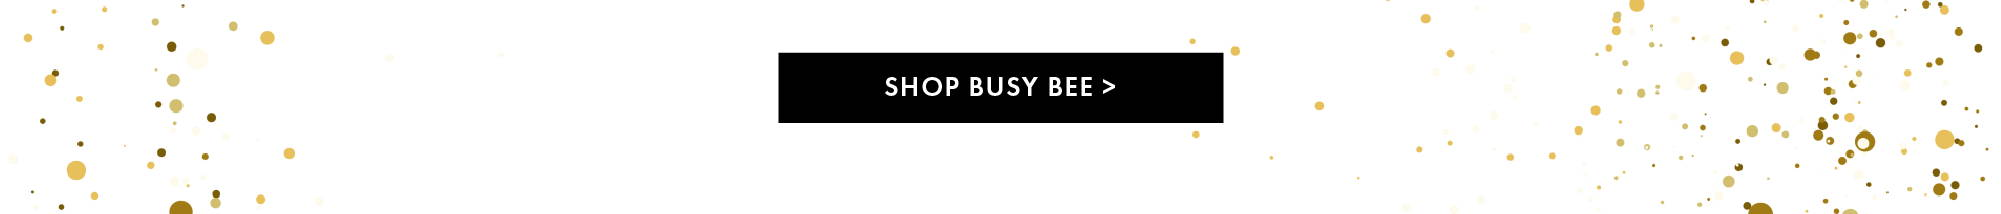 Shop Busy Bee >